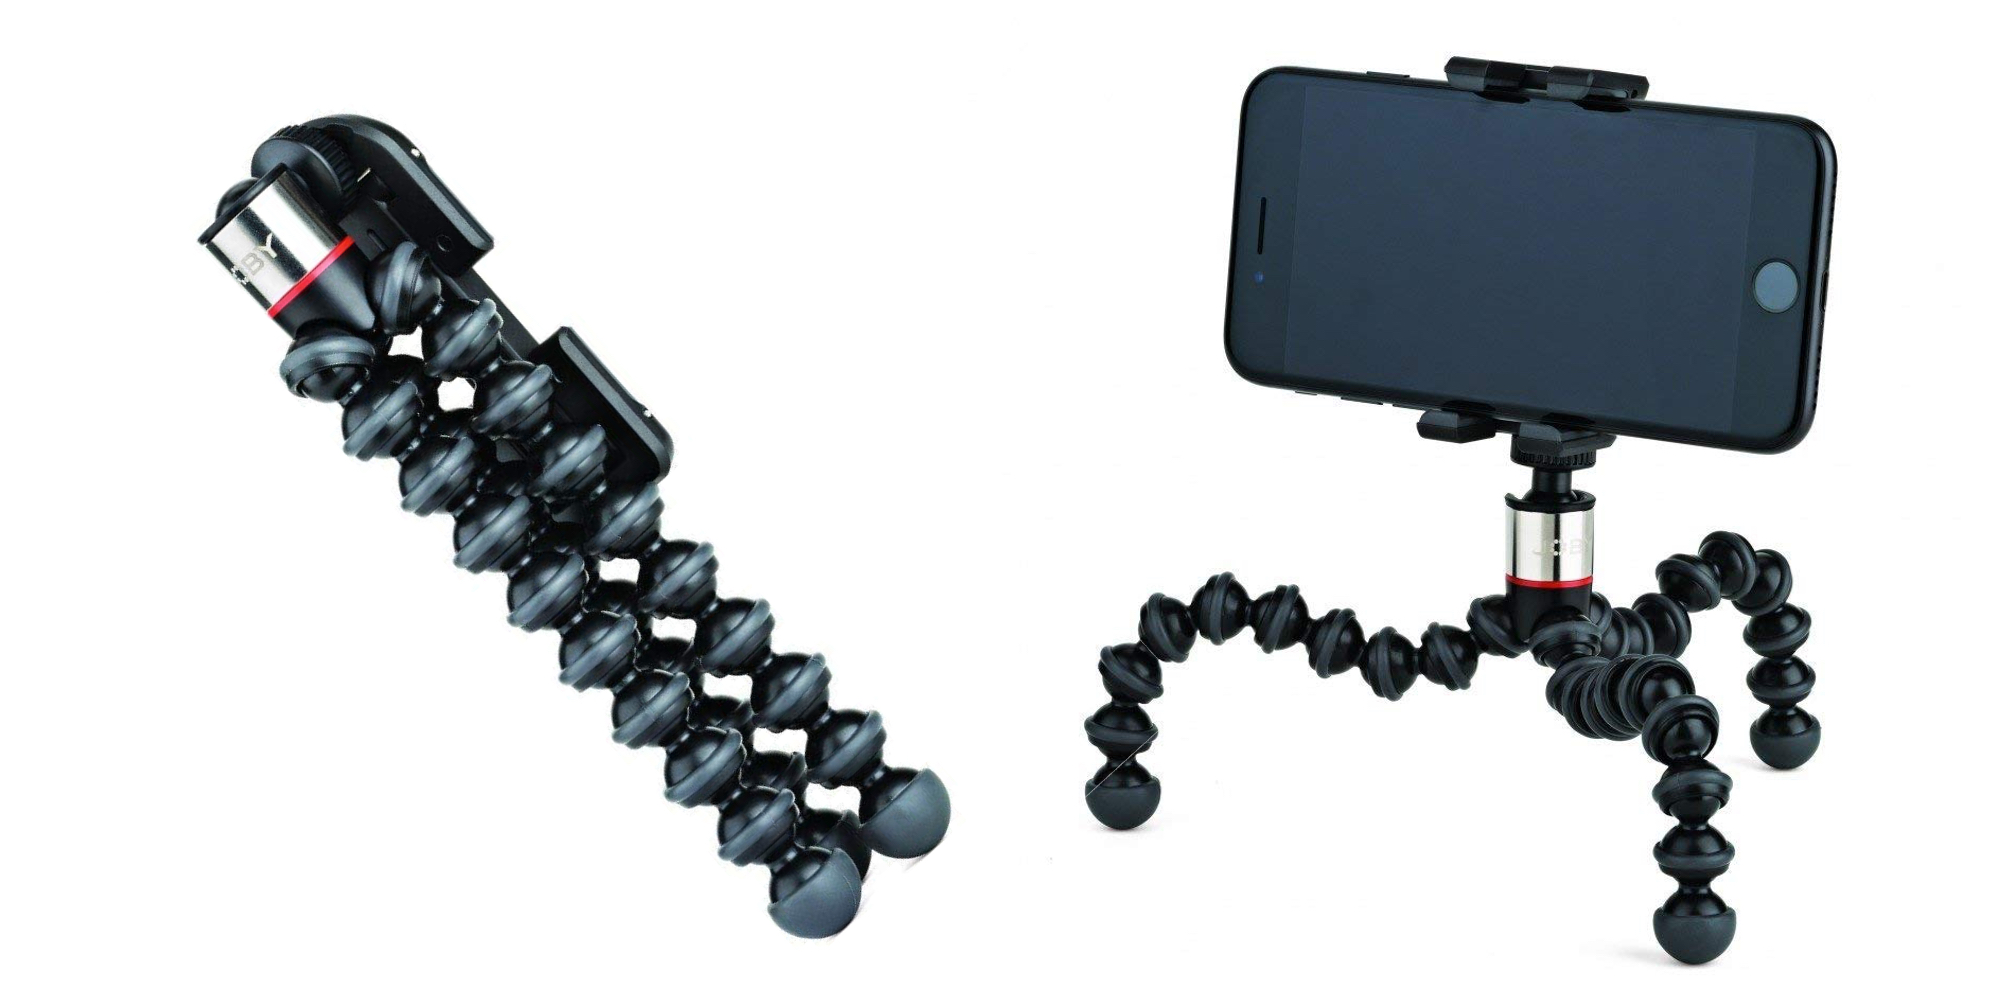 Take your iPhoneography next level w/ Joby's $25 GripTight ONE GorillaPod (20% off)